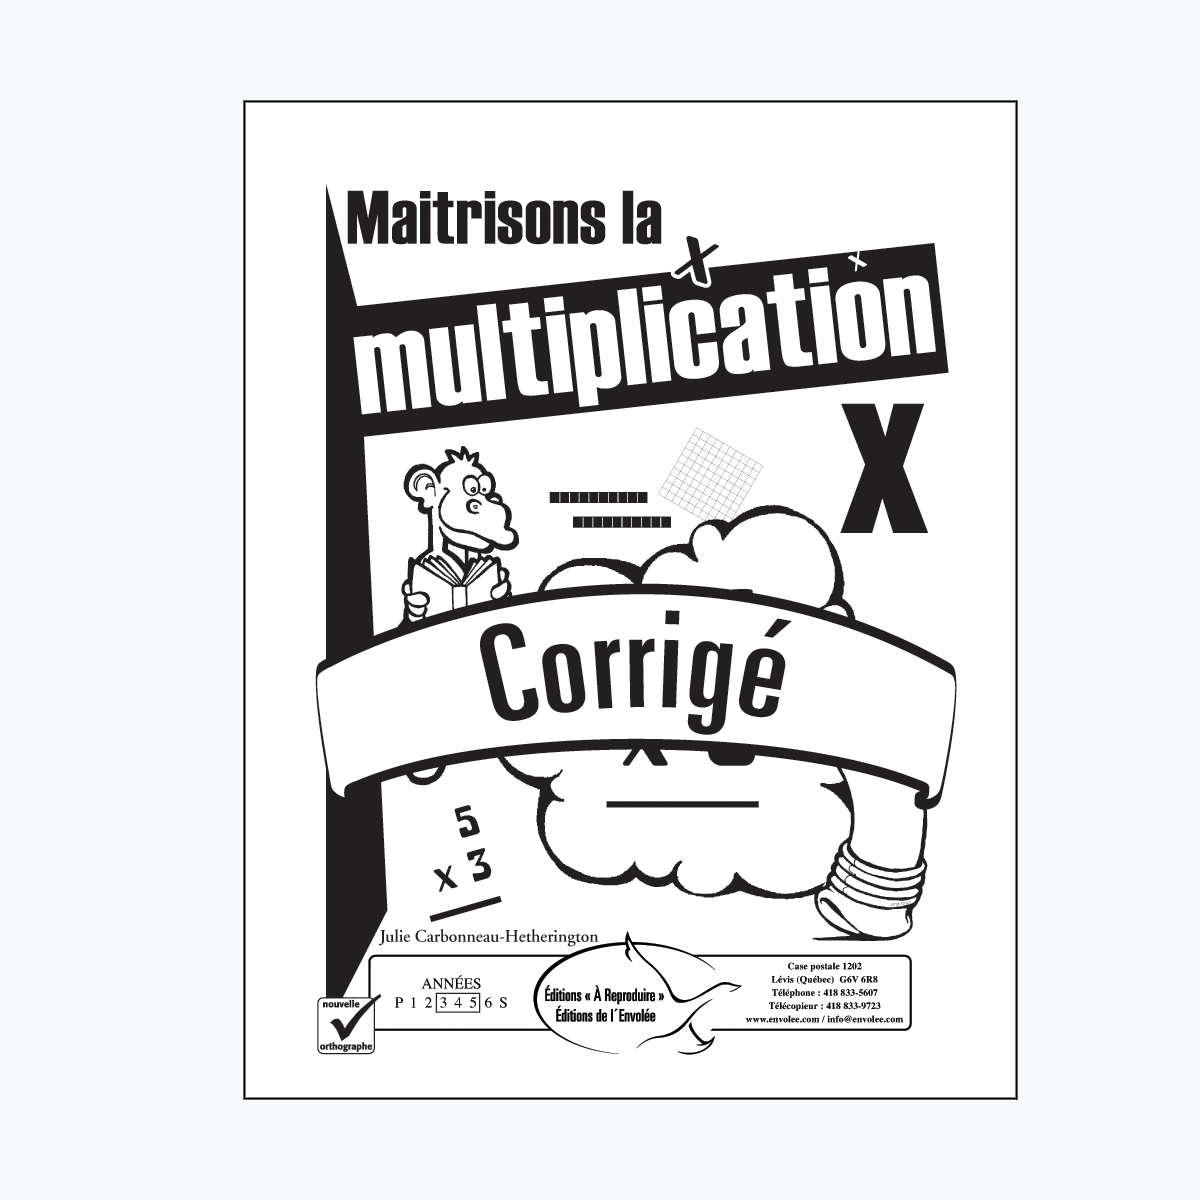 Maitrisons la multiplication - en PDF